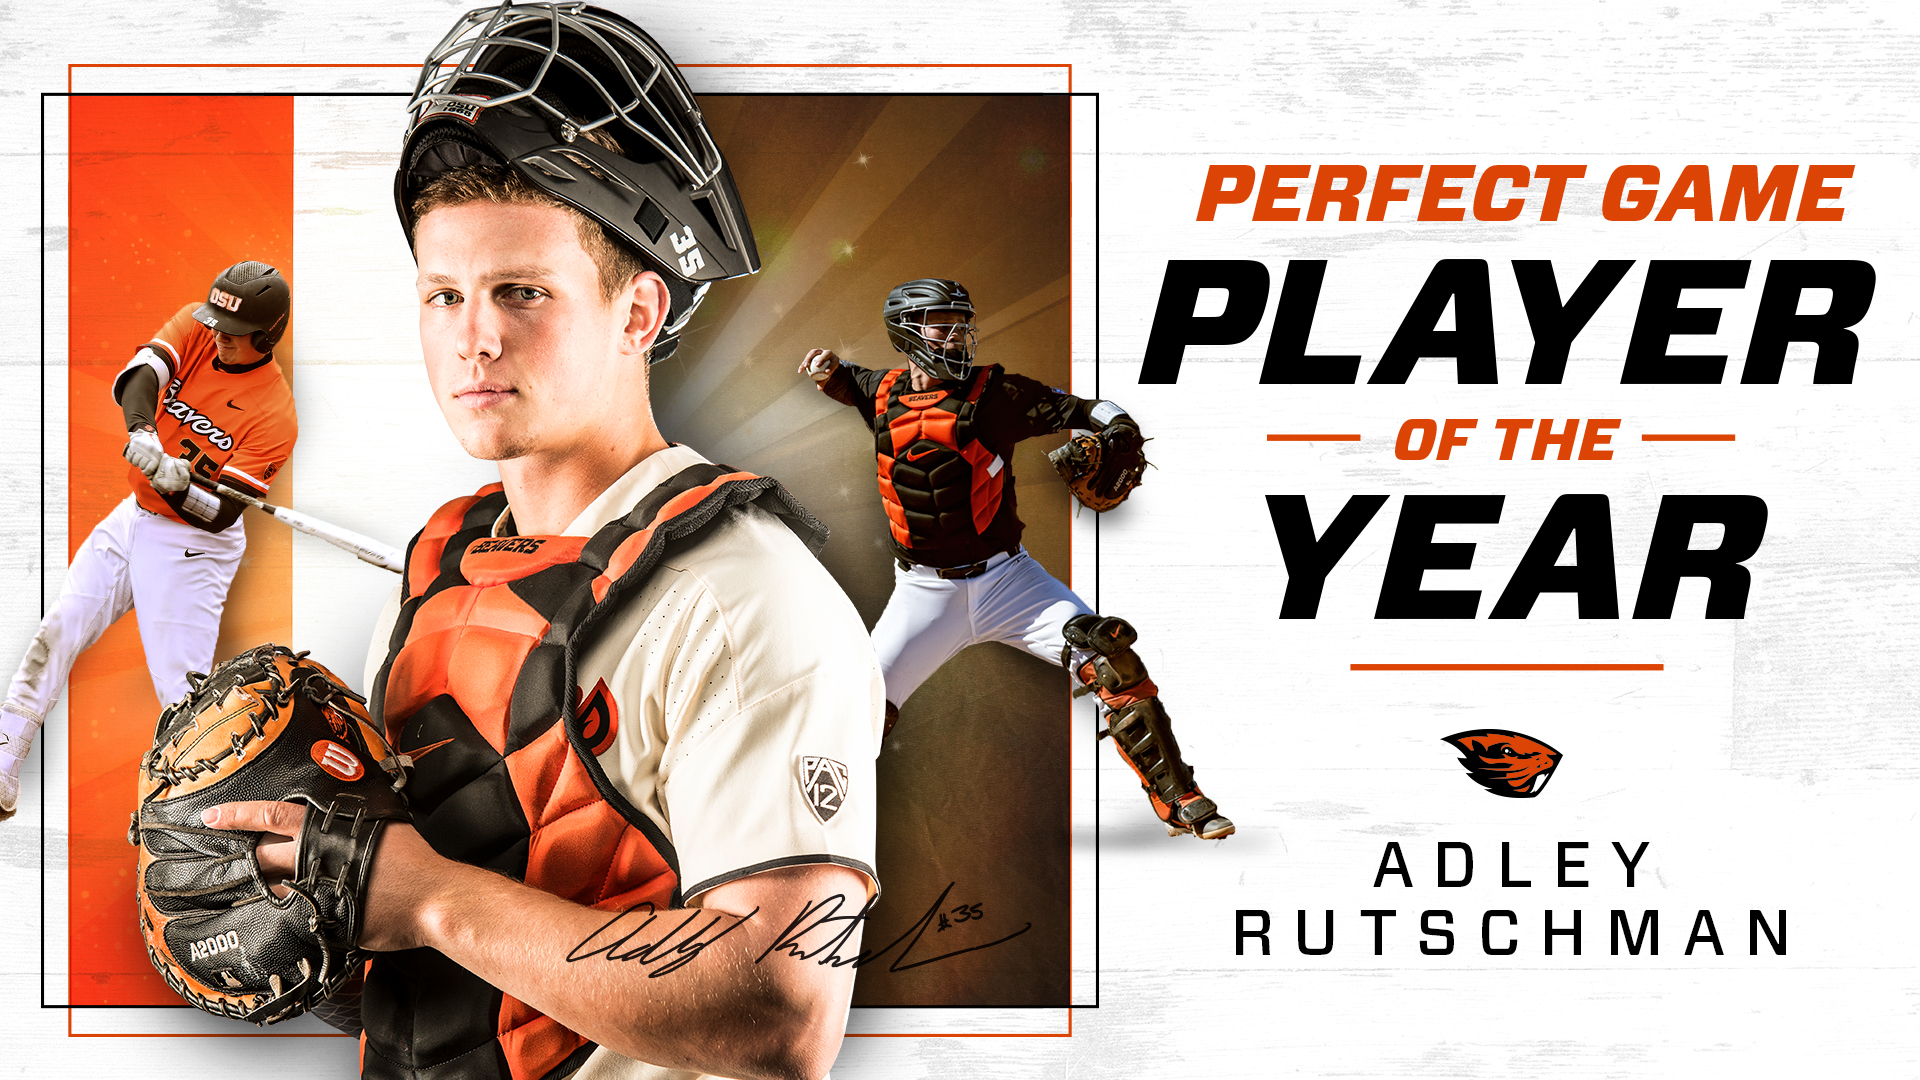 Rutschman Named Perfect Game's Top Player In 2019 - Oregon